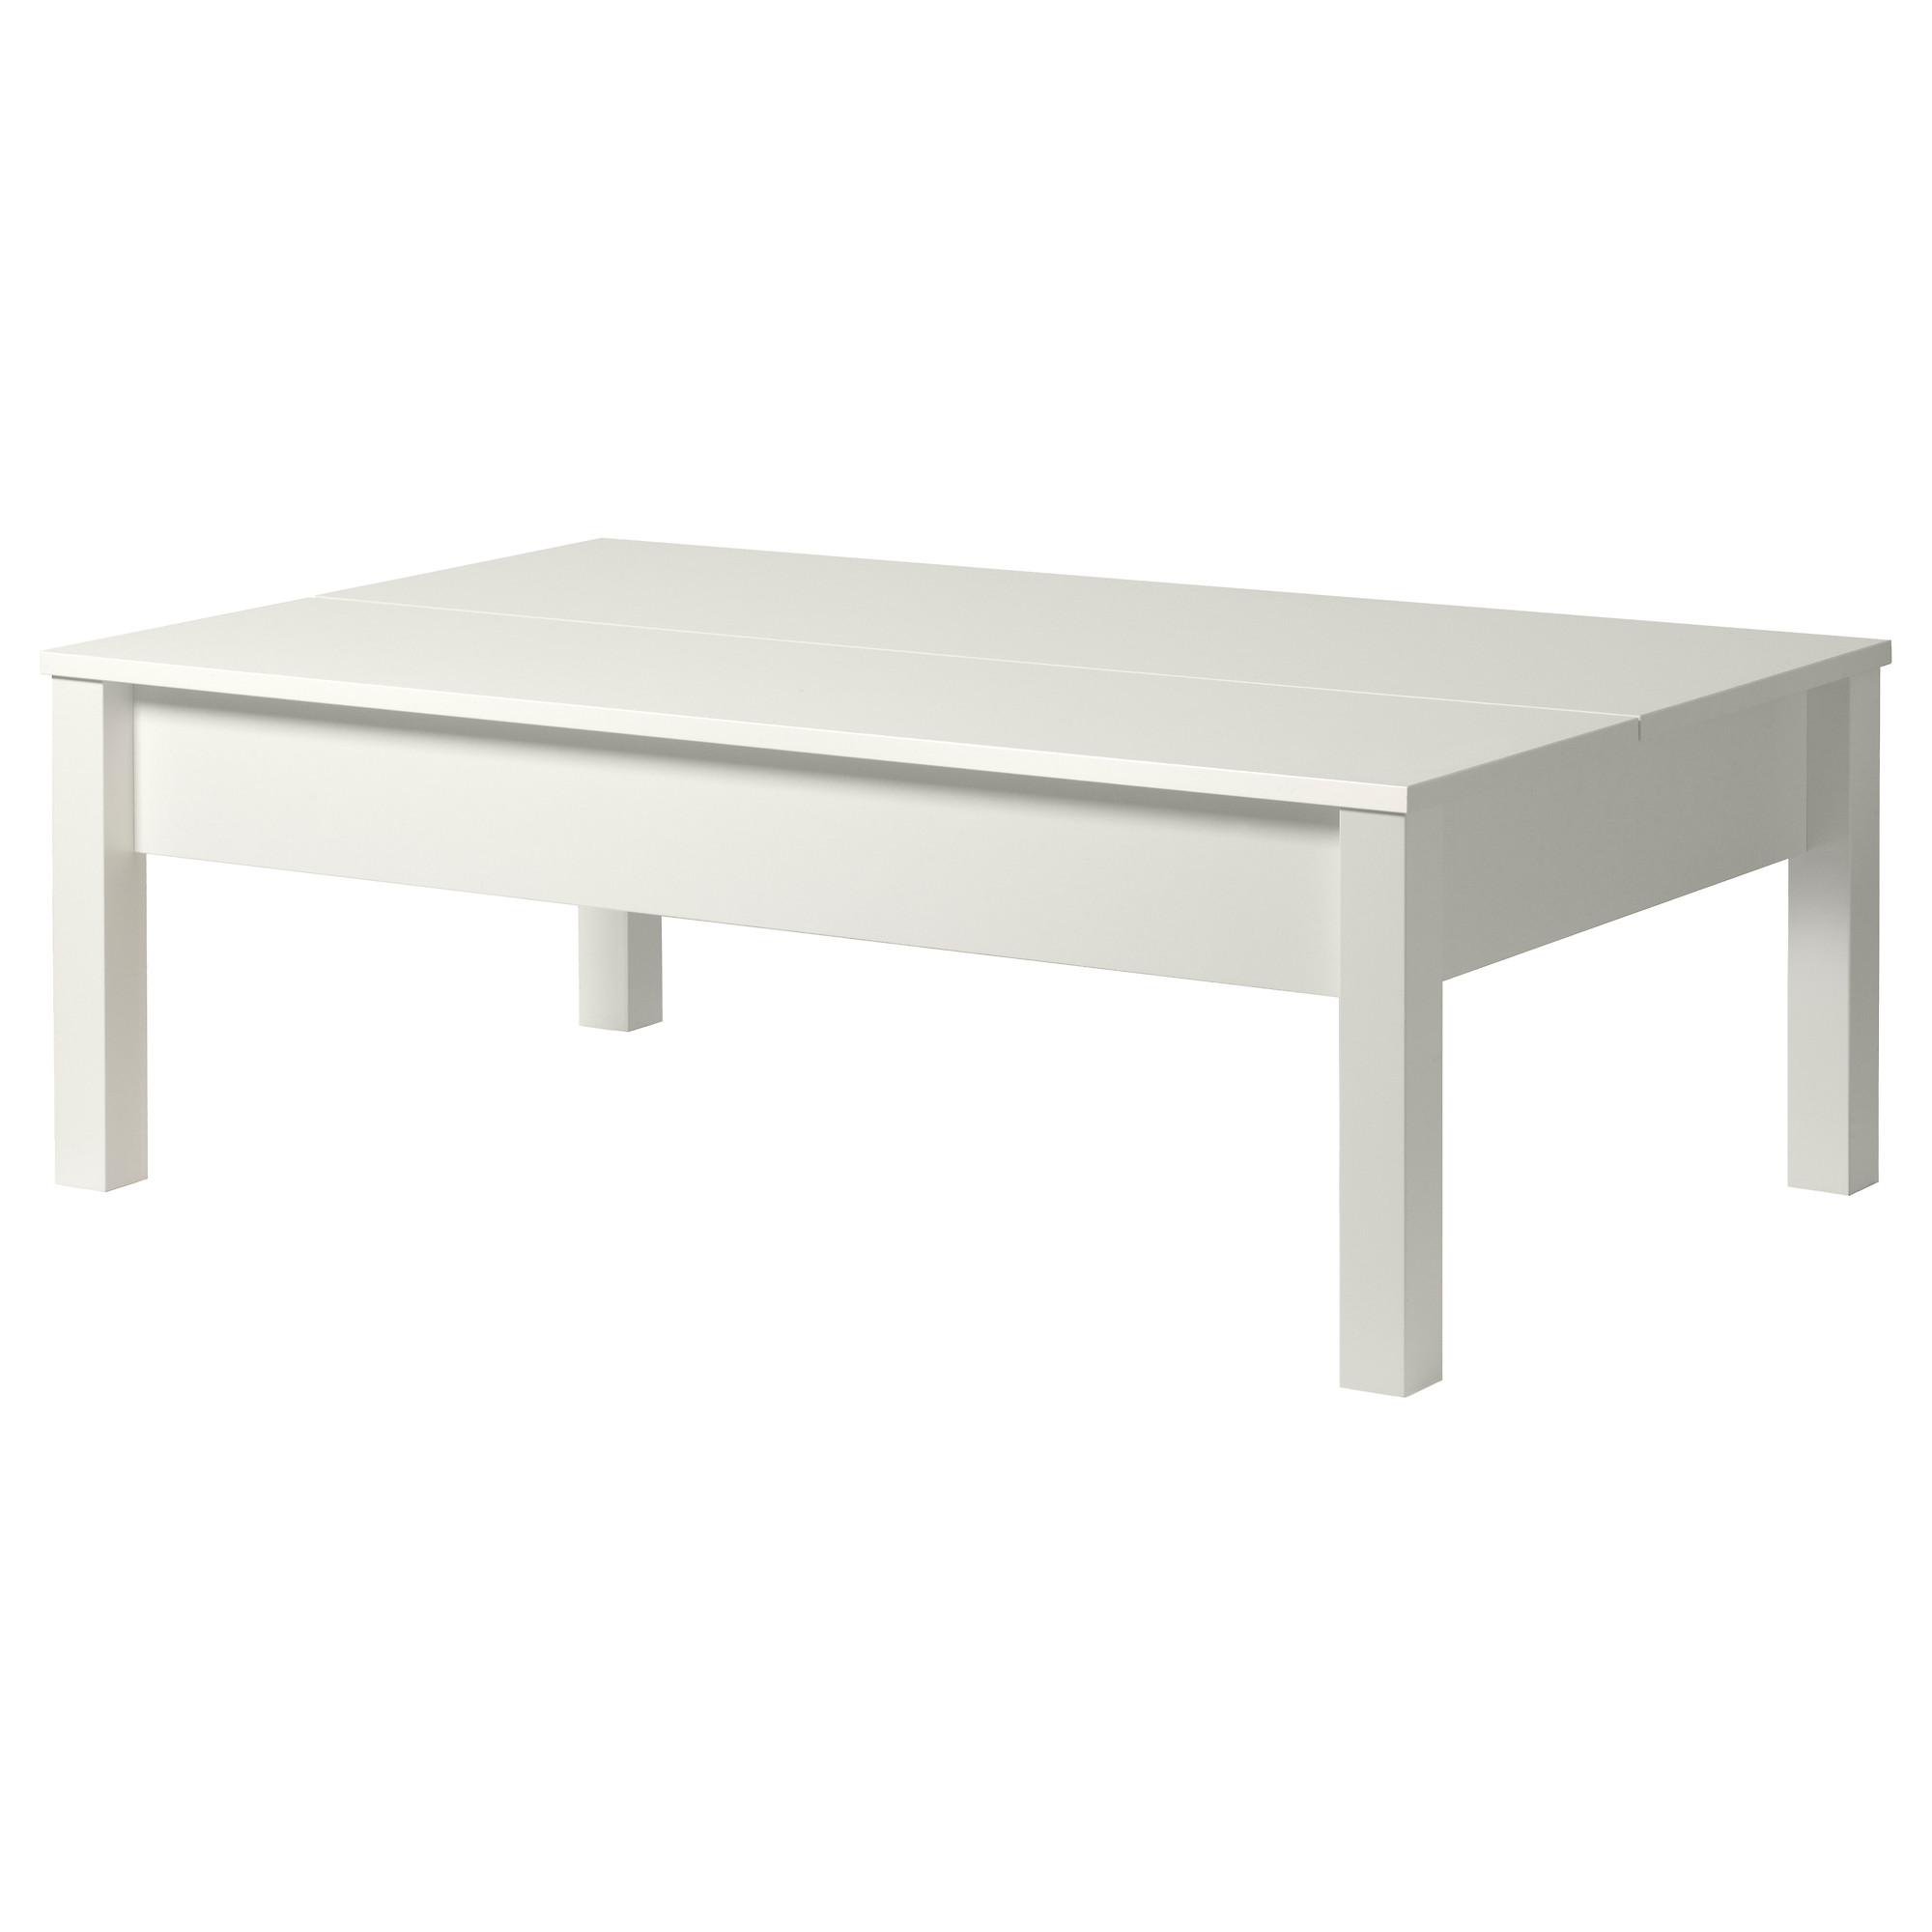 Table basse jardin ikea mobilier design d coration d for Ikea table 9 99